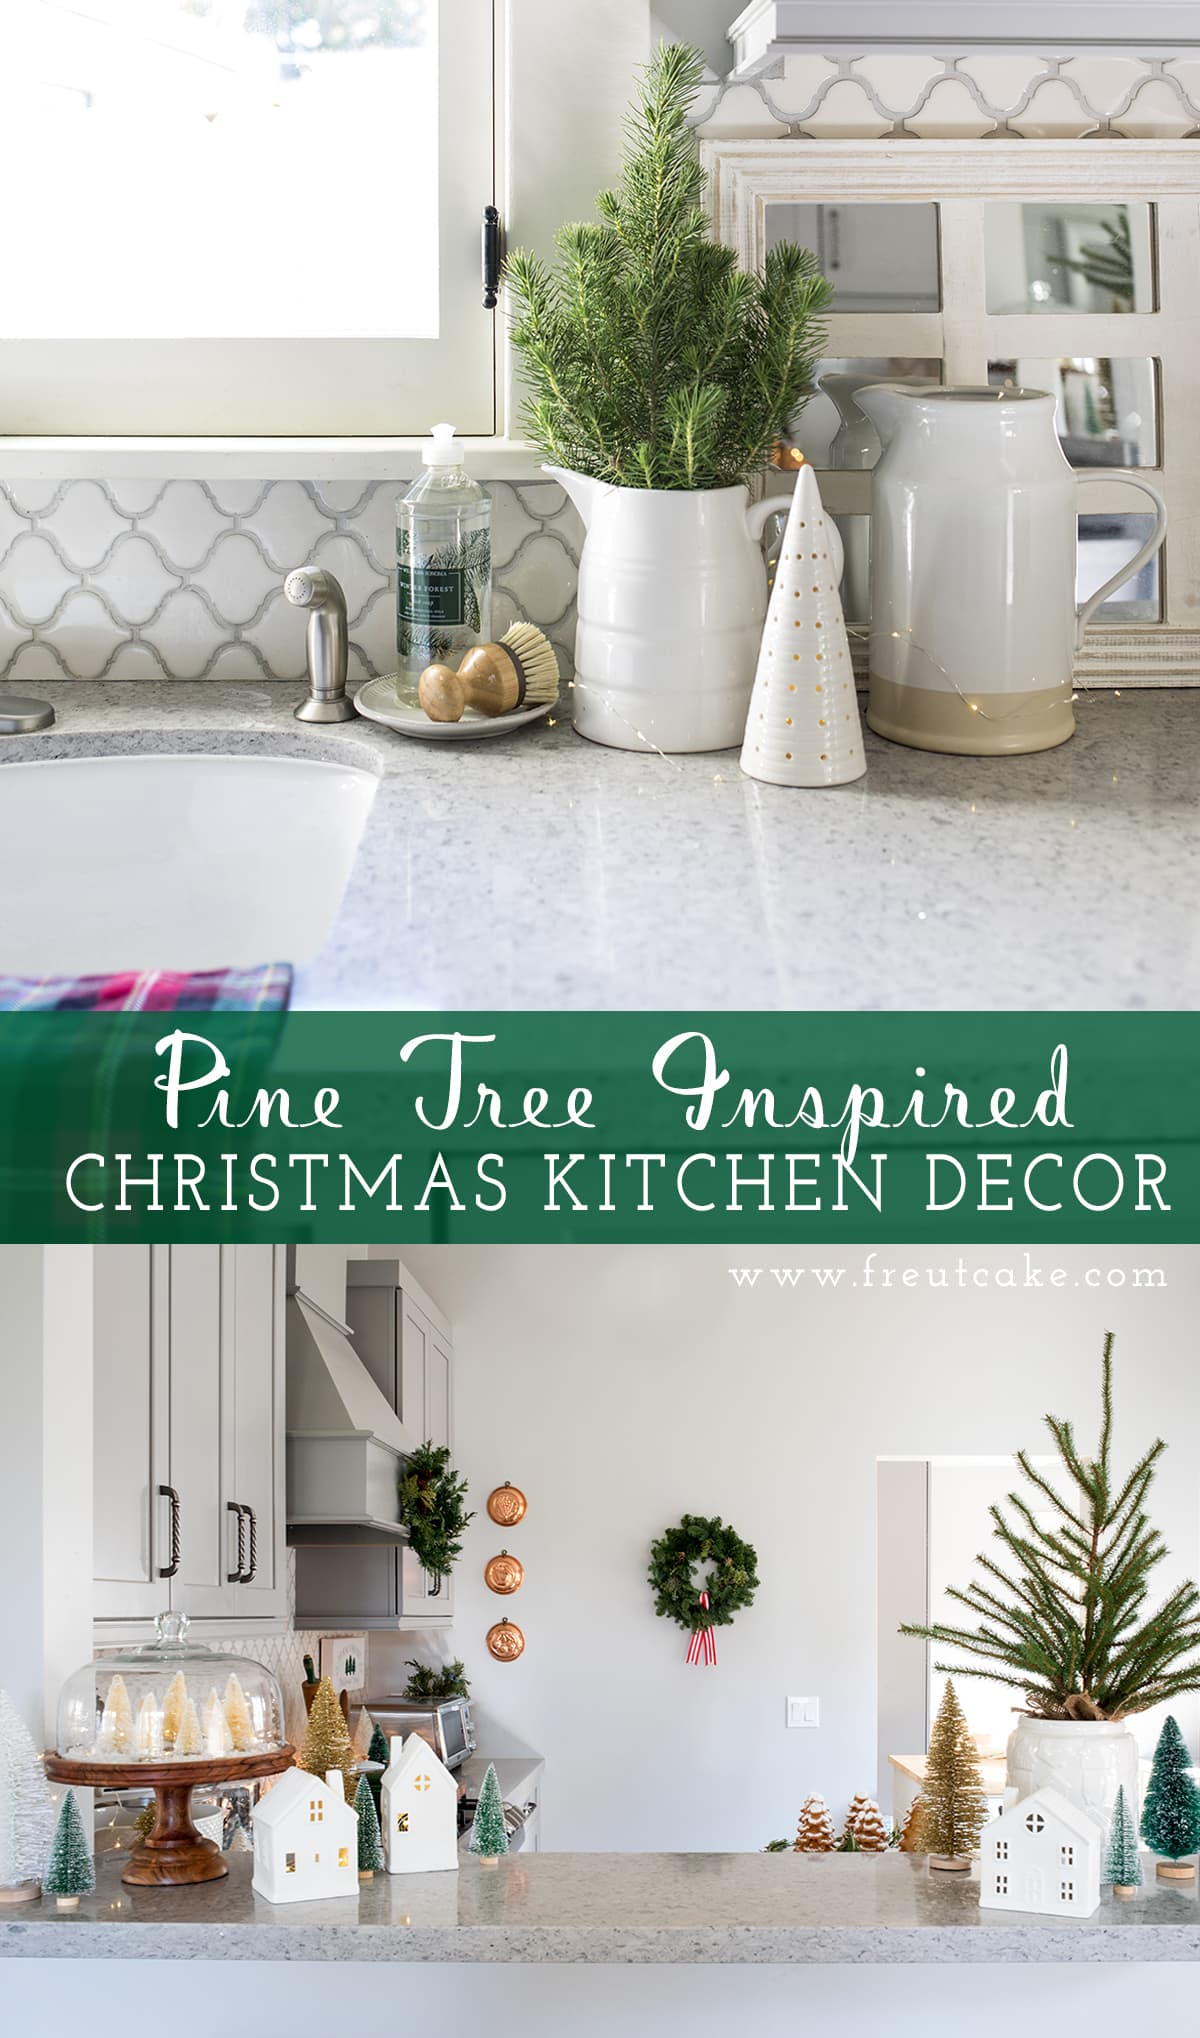 Our Pine Tree Inspired Christmas Kitchen Decor • Freutcake